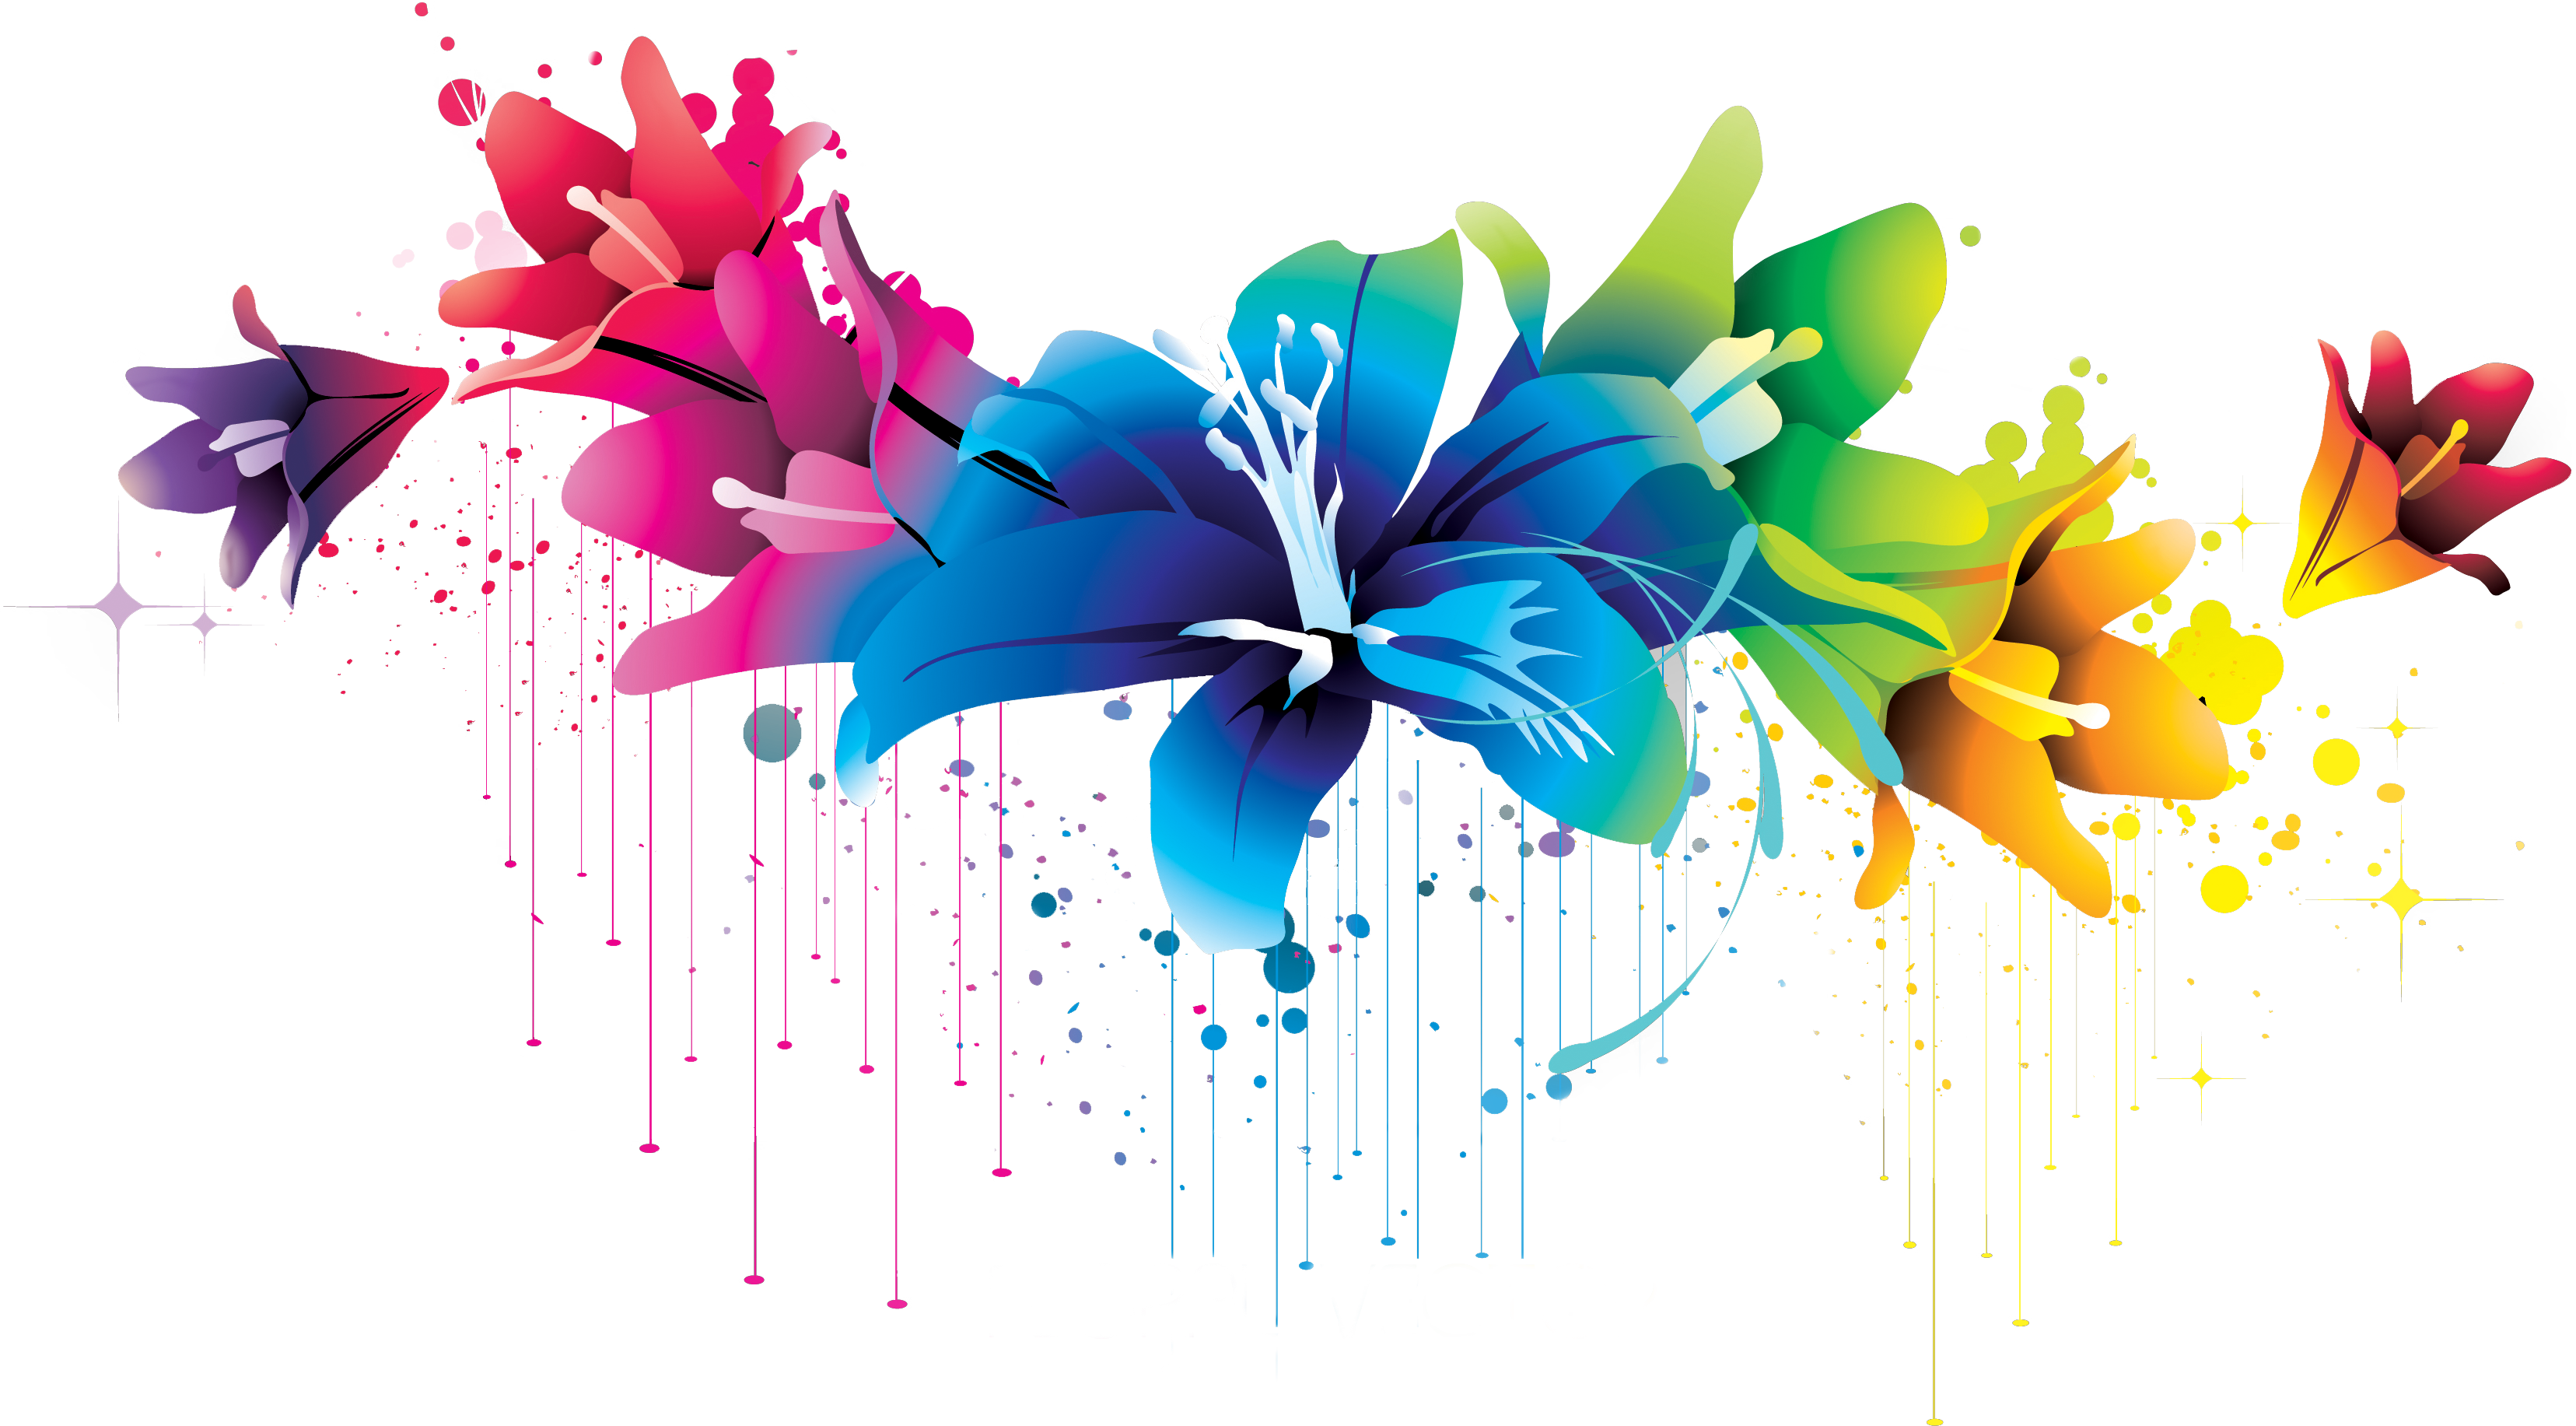 Formal, Colorful, Shaped, Visual, Colored Smoke Images   PNG Images